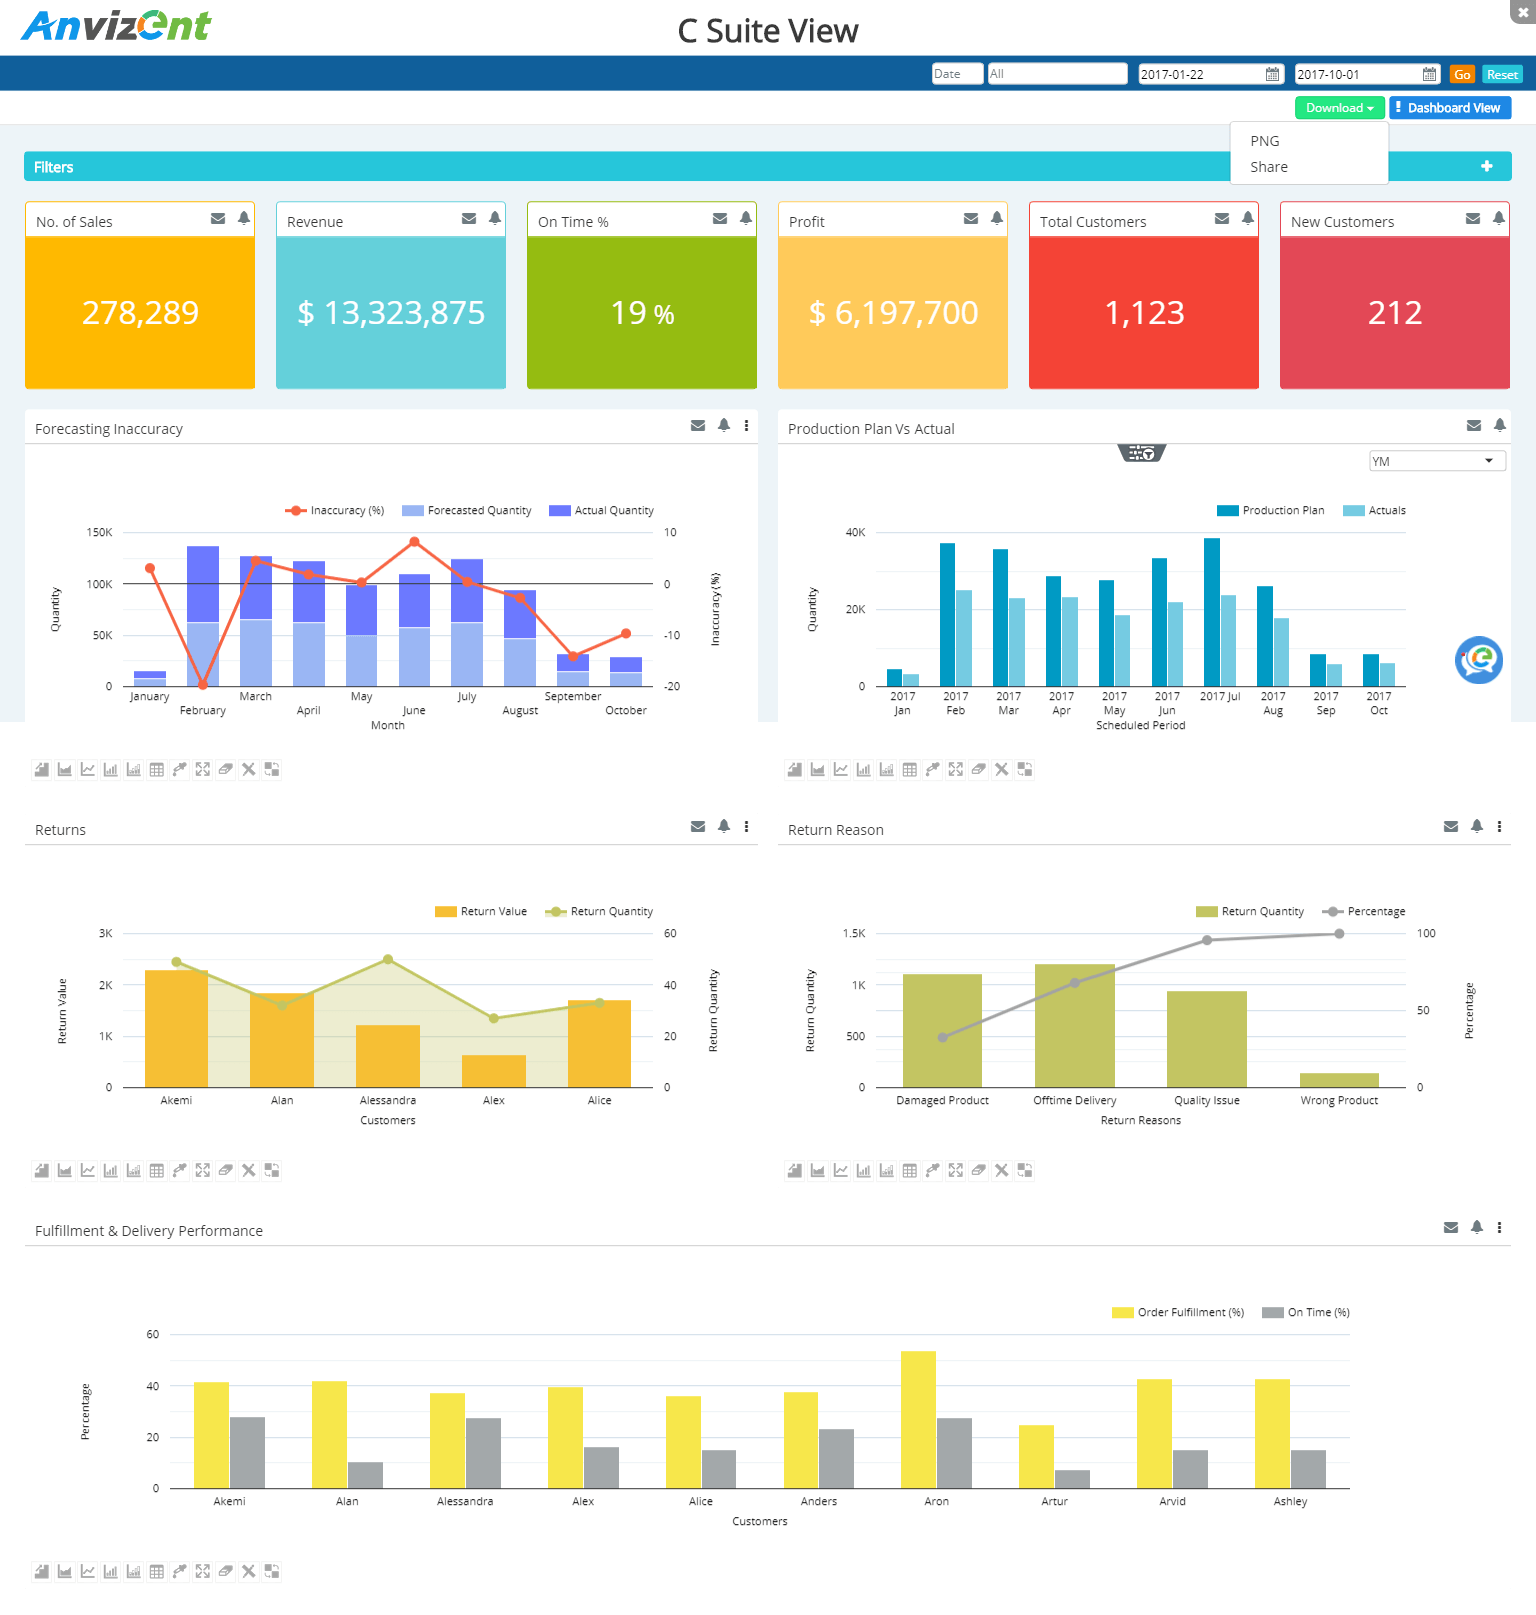 Anvizent Dashboards for Priority ERP - C Suite View